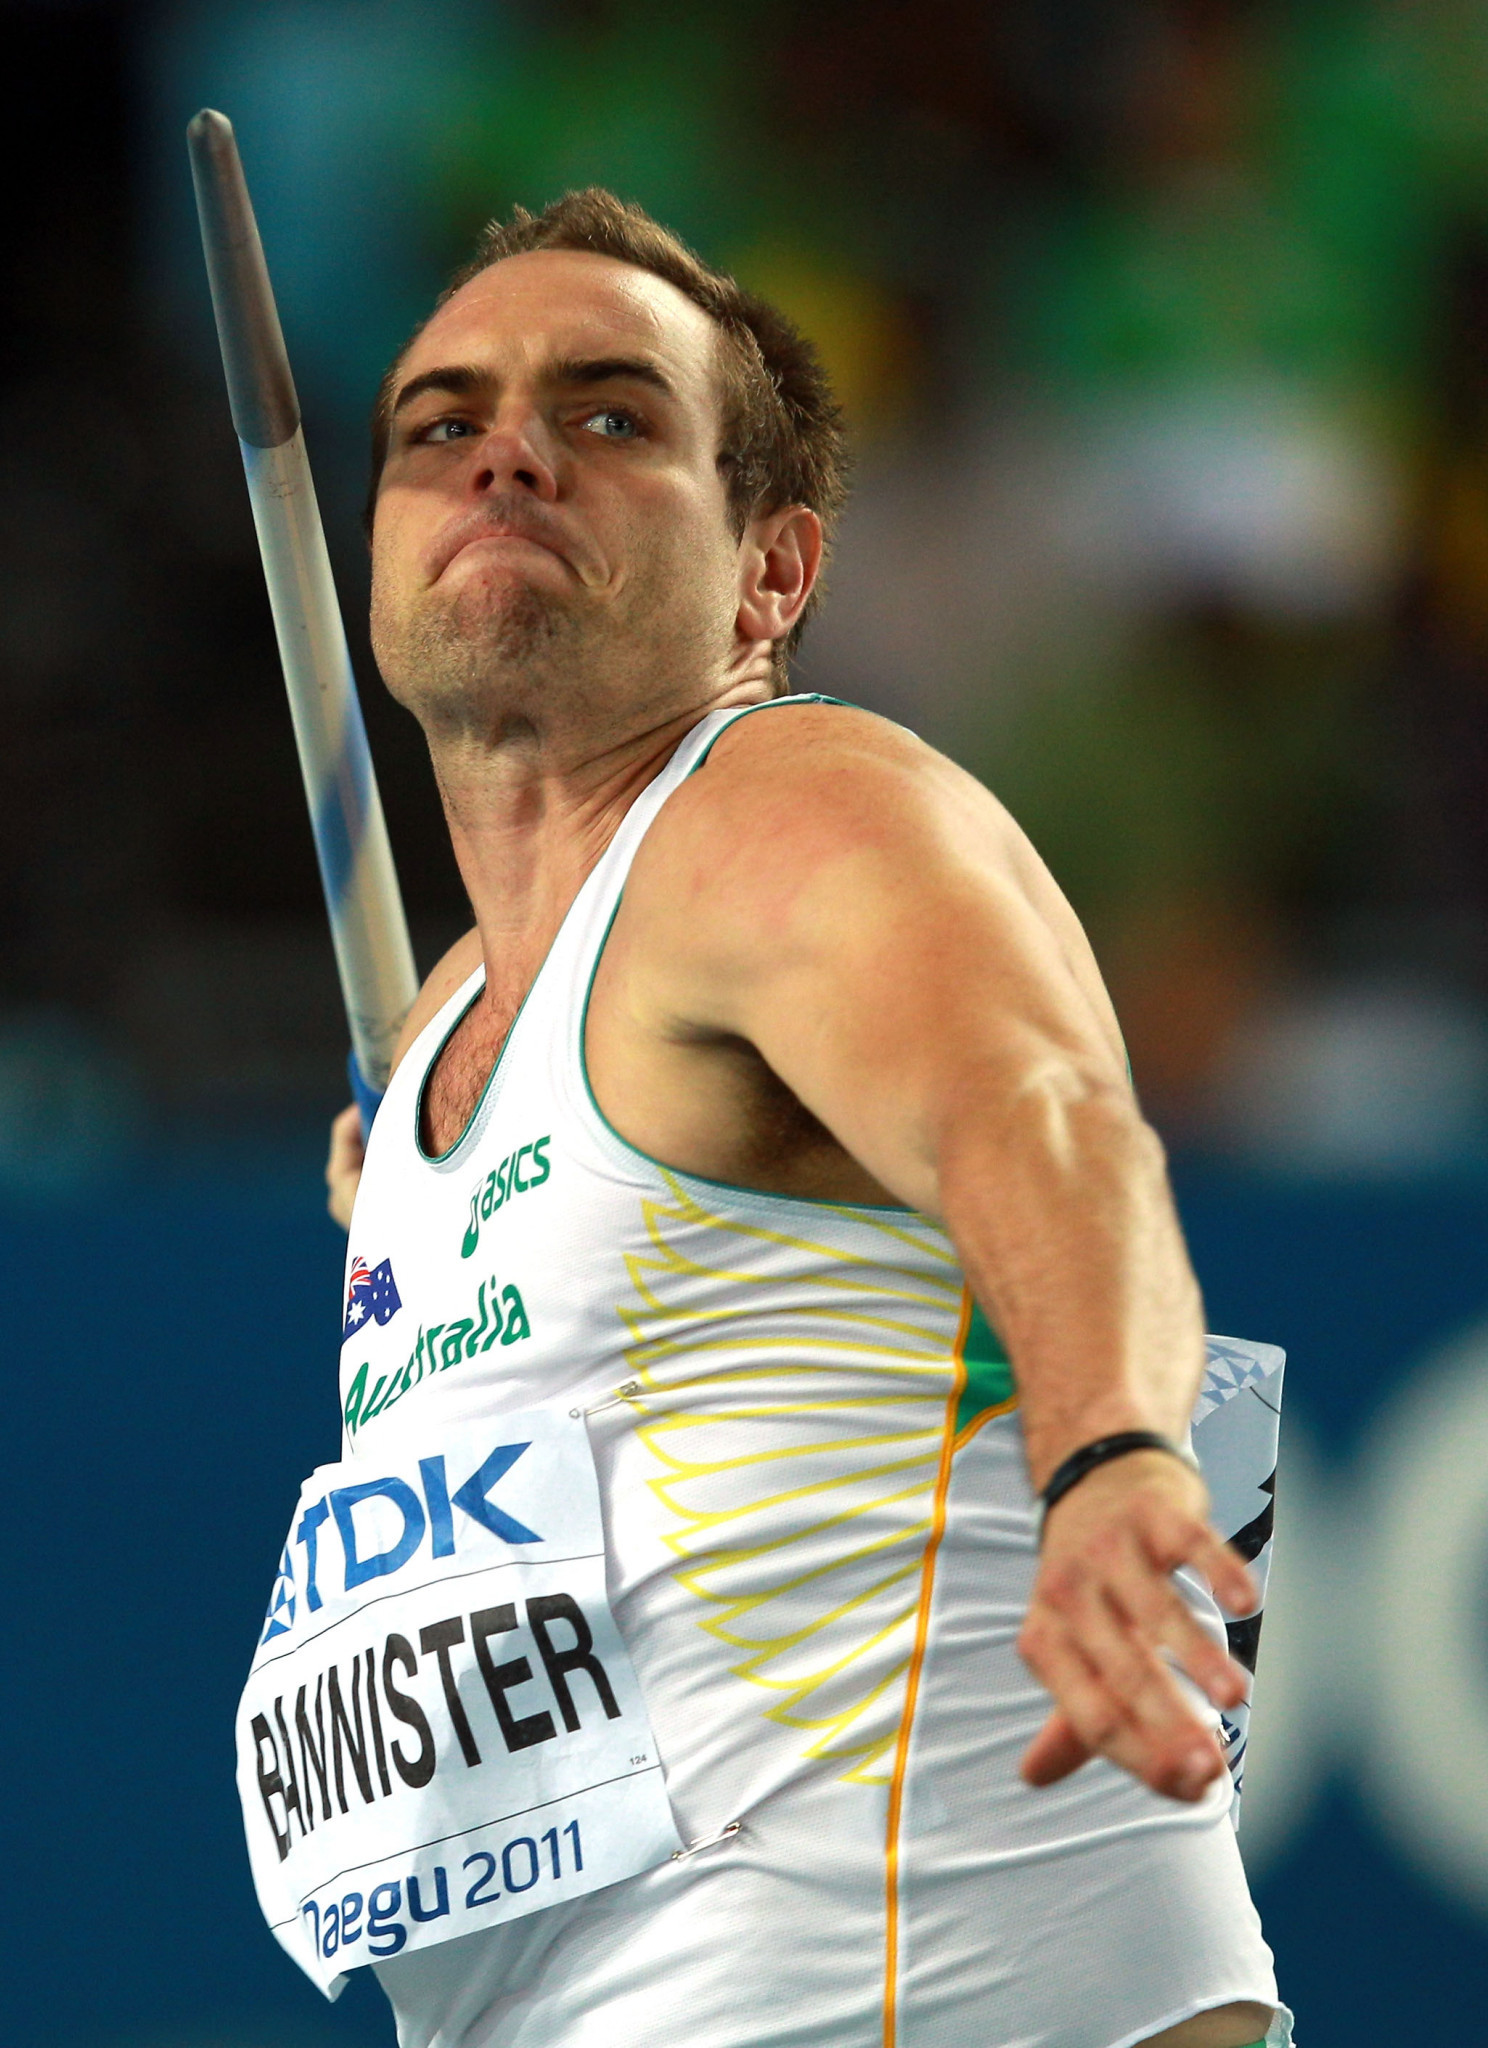 Commonwealth Games javelin gold medallist Bannister dies aged 33